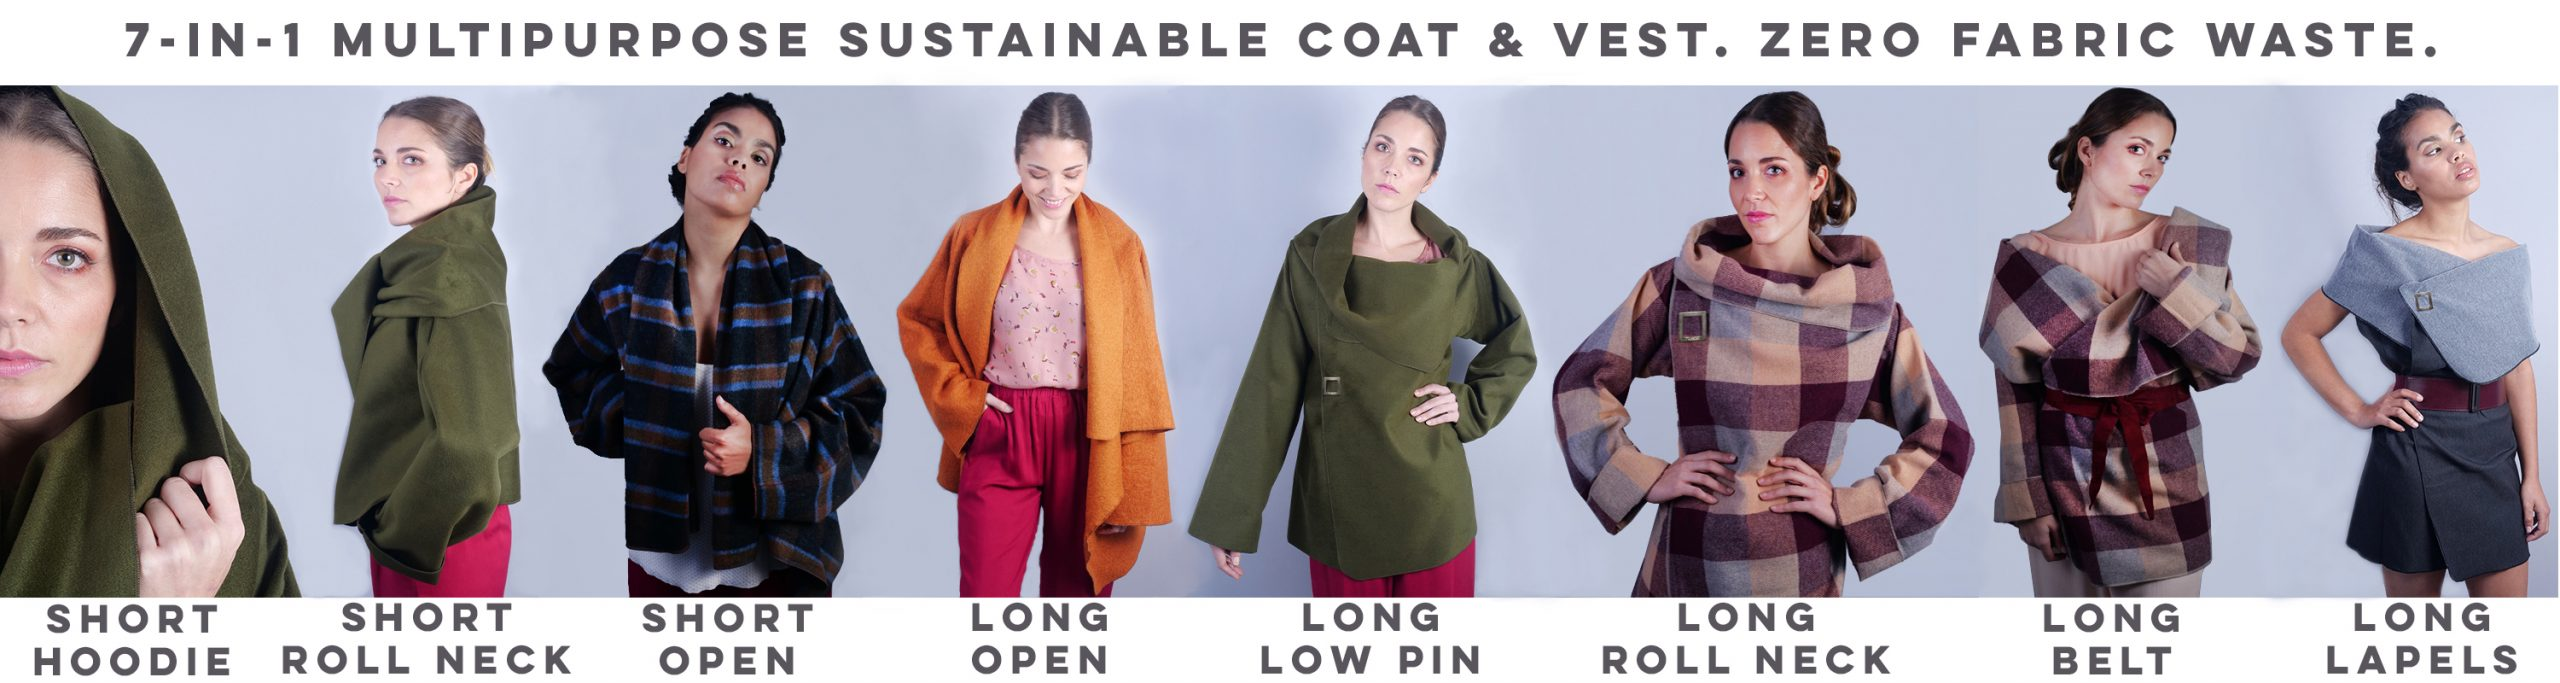 7-in-1 coat positions